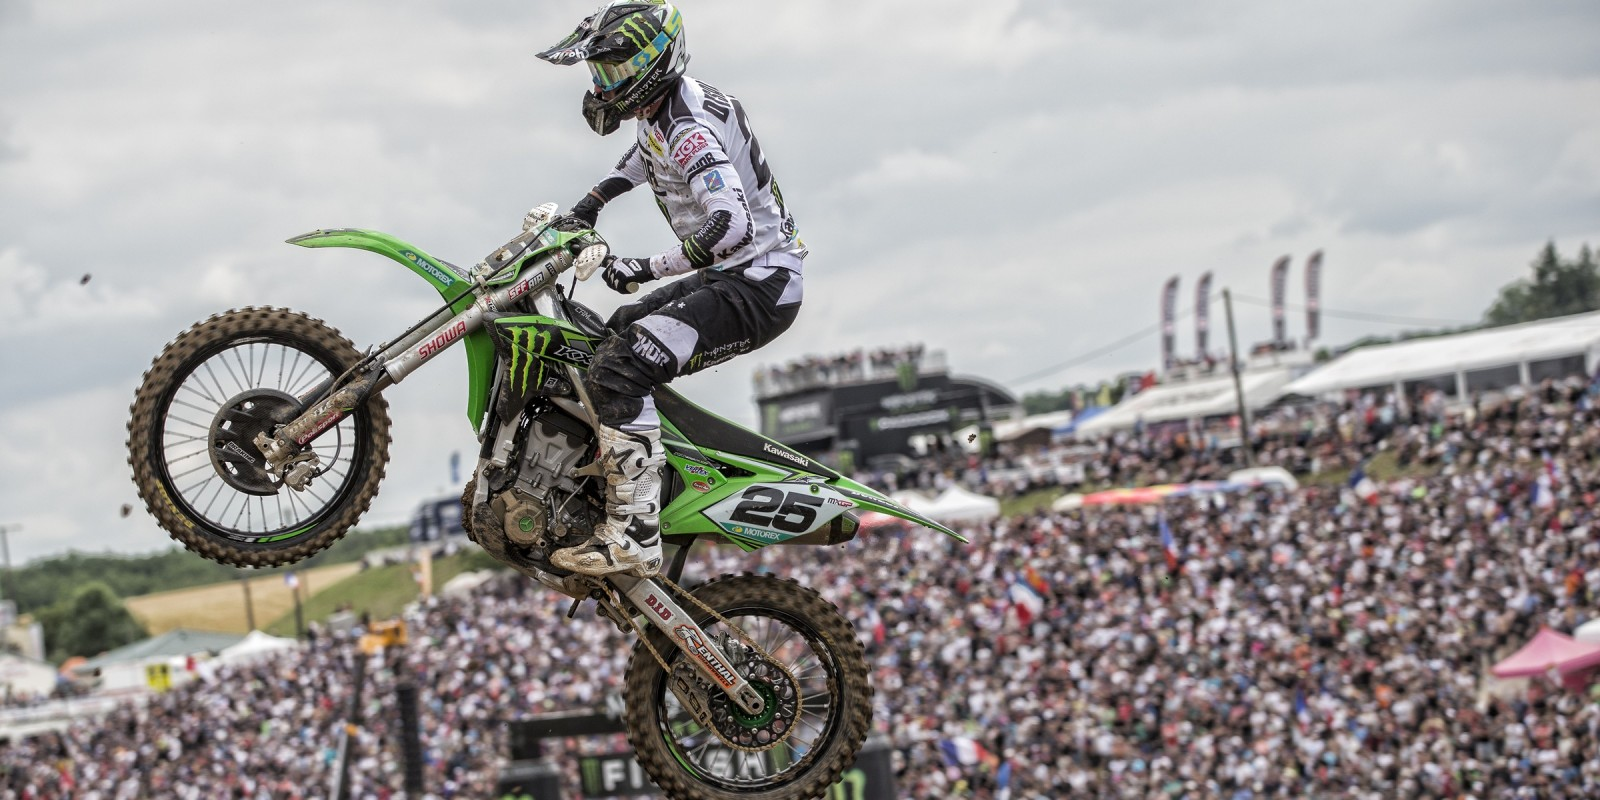 Clement Desalle at the 2016 MXGP of France